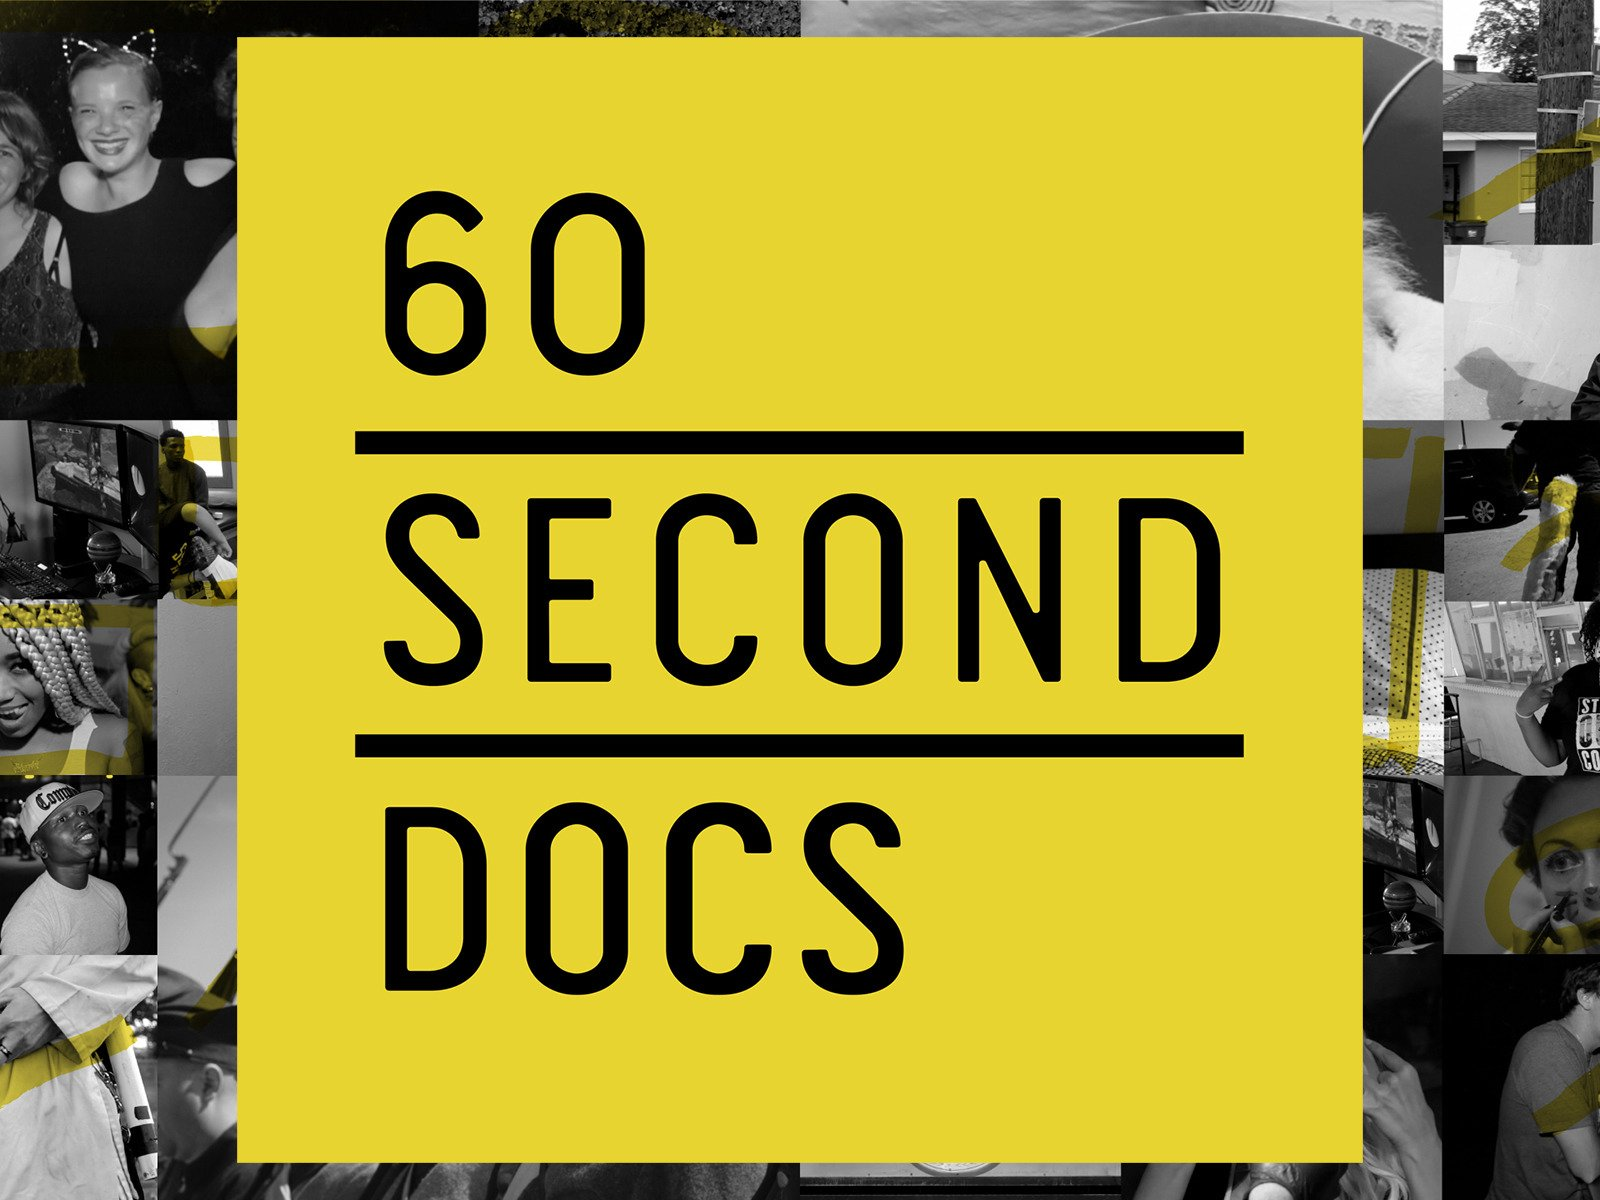 60 Second Docs - Season 1